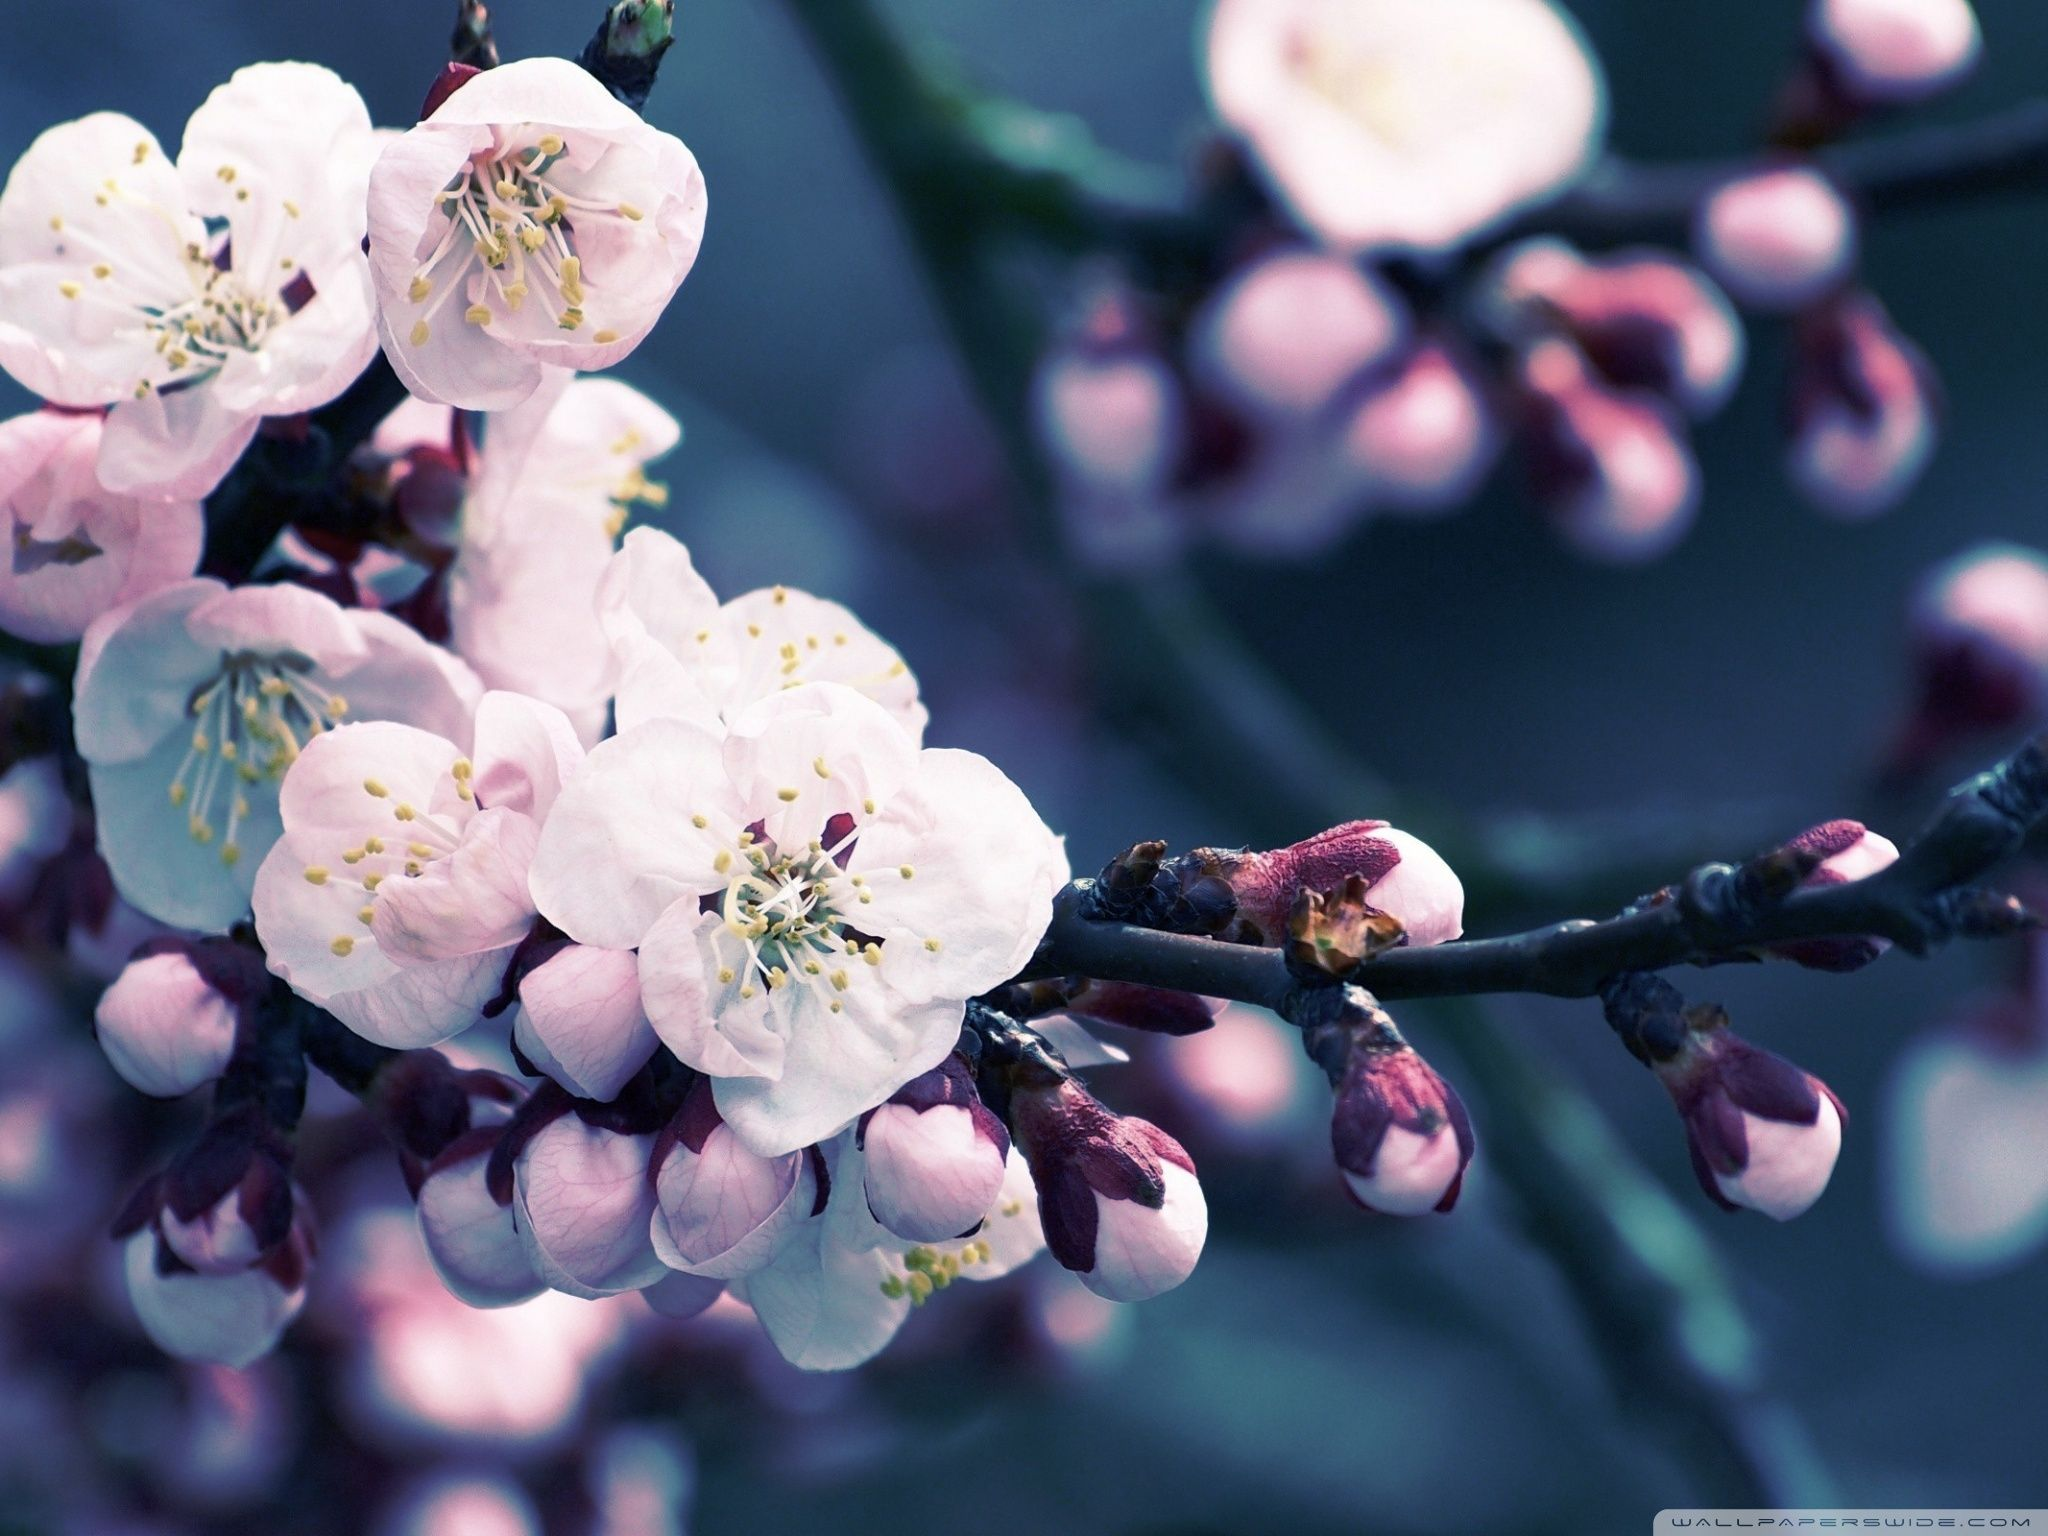 Flower Close Up Of Cherry Blossom HD Desktop Wallpaper